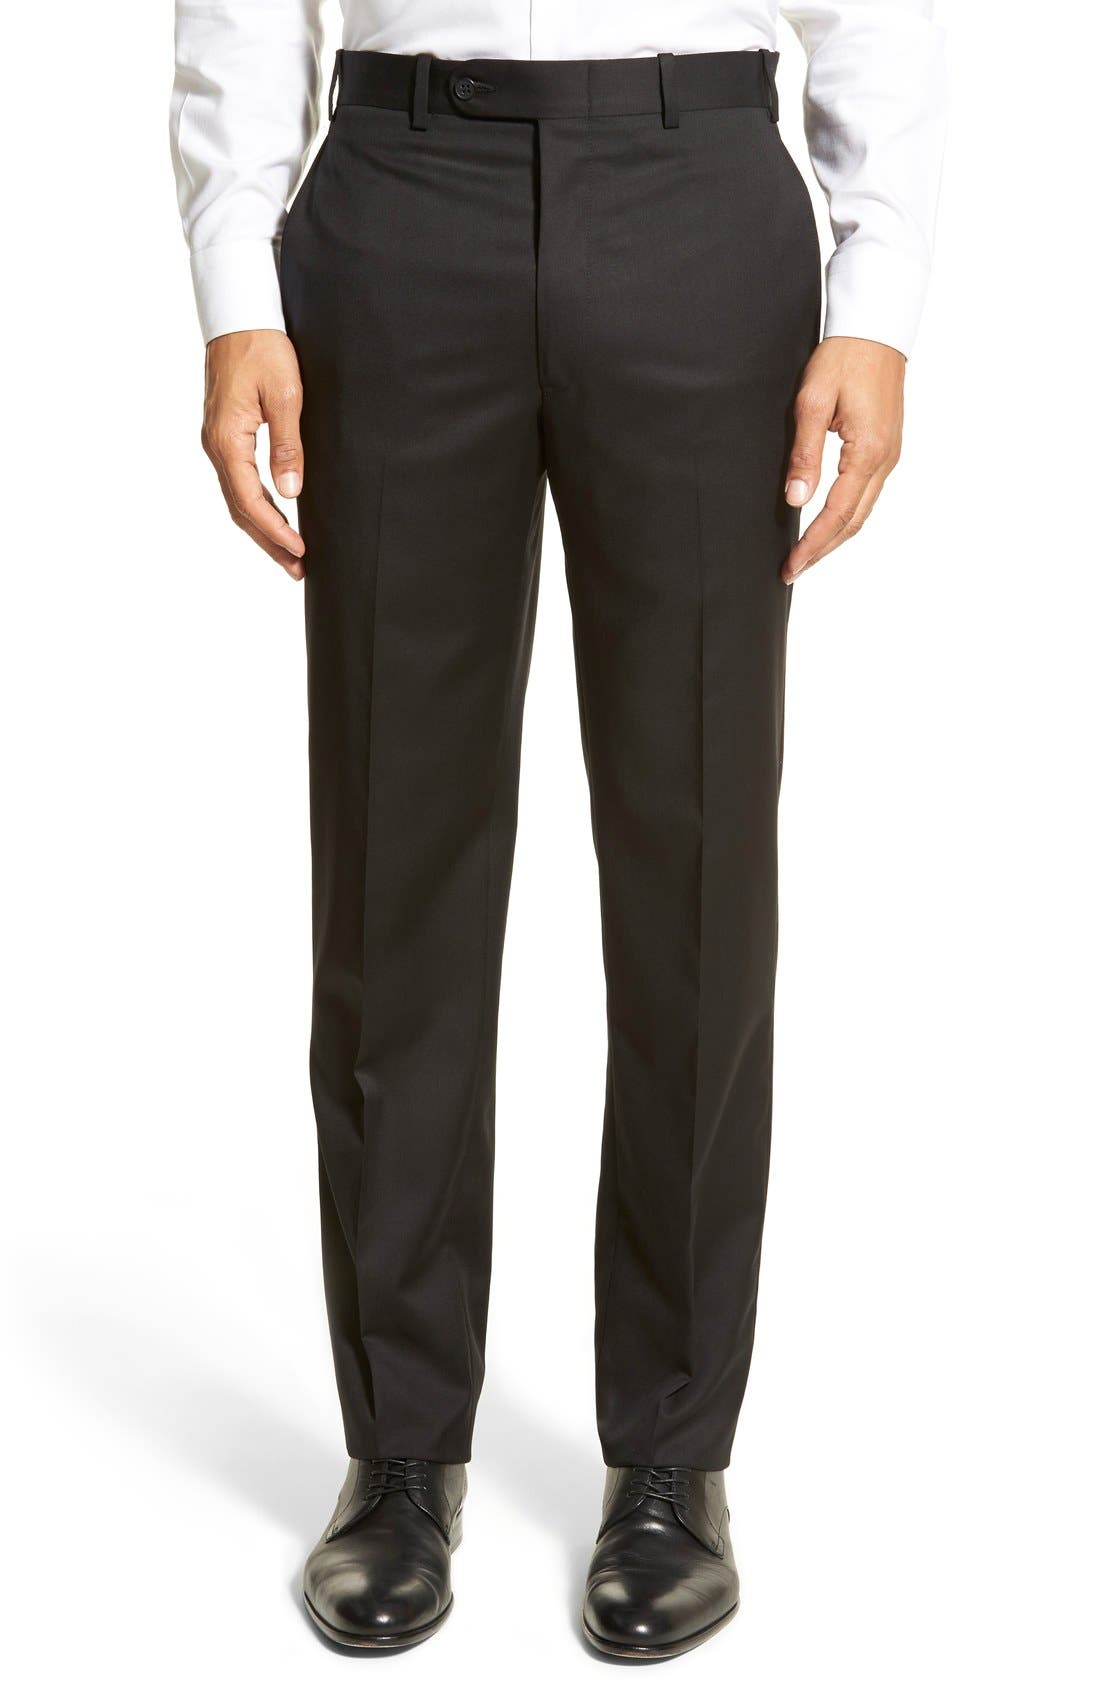 DI MILANO UOMO 'Torino' Flat Front Solid Wool Trousers, Main, color, 001